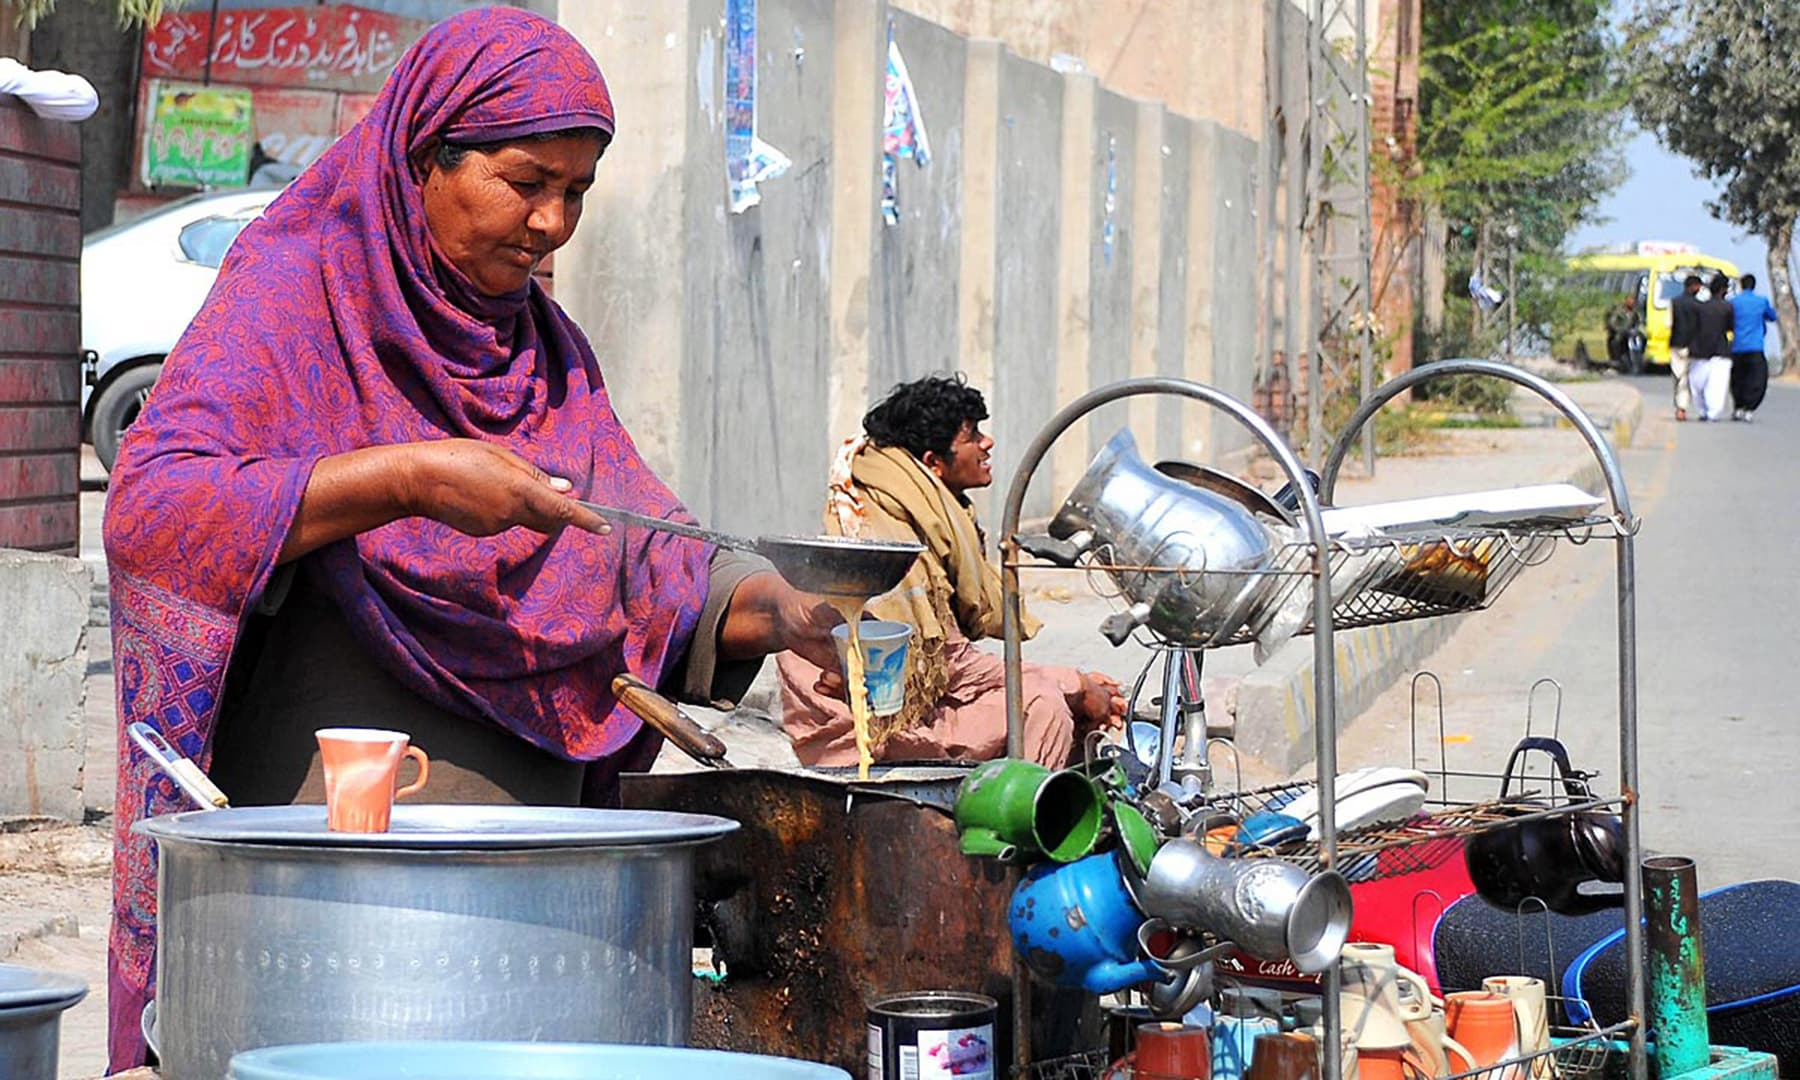 A female vendor prepares tea at her pushcart in Multan as International Women's Day is observed on Friday. — APP